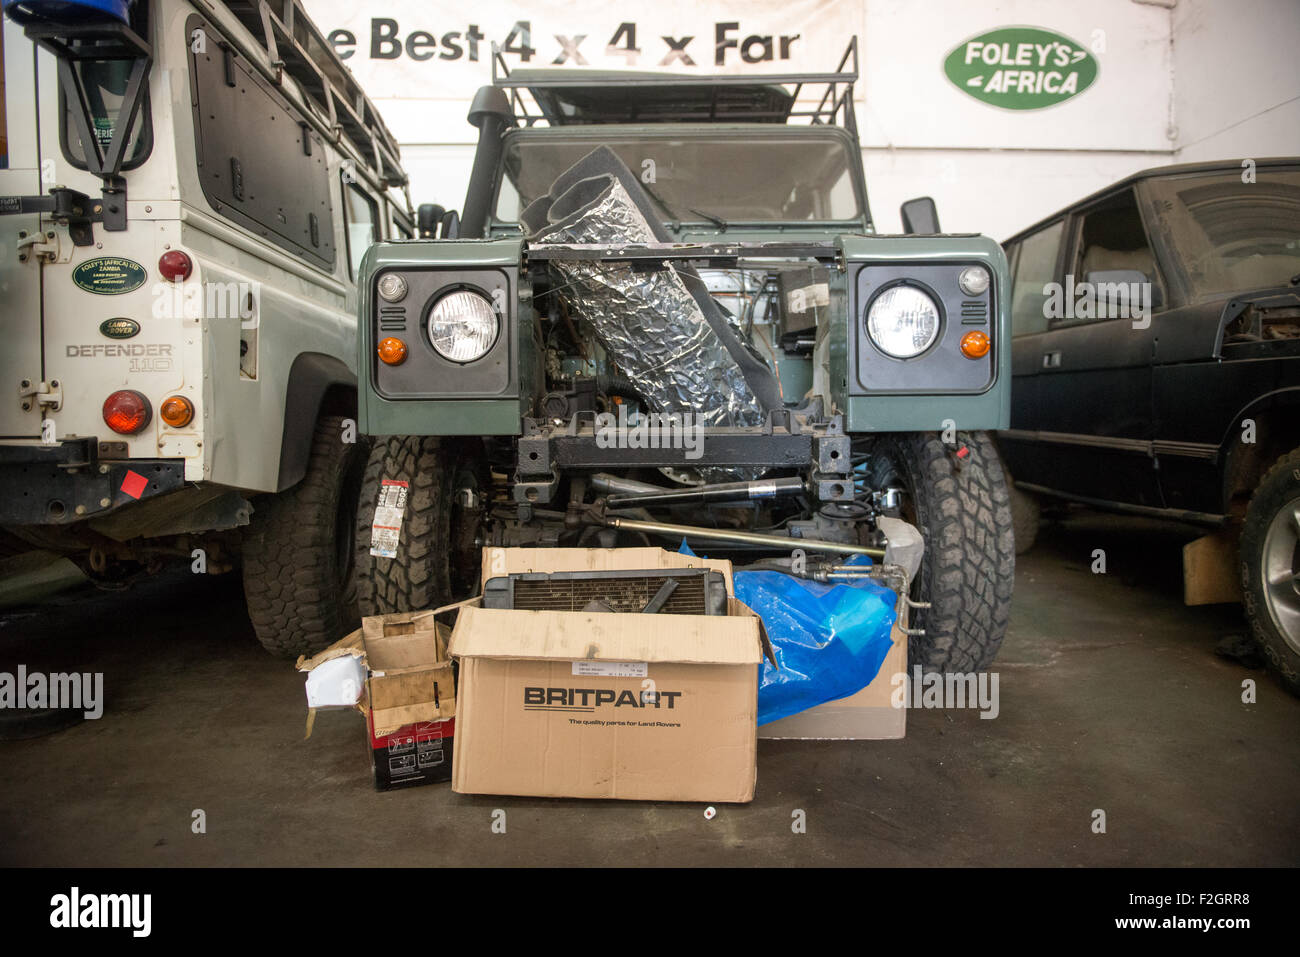 Rover Parts Stock Photos & Rover Parts Stock Images - Alamy